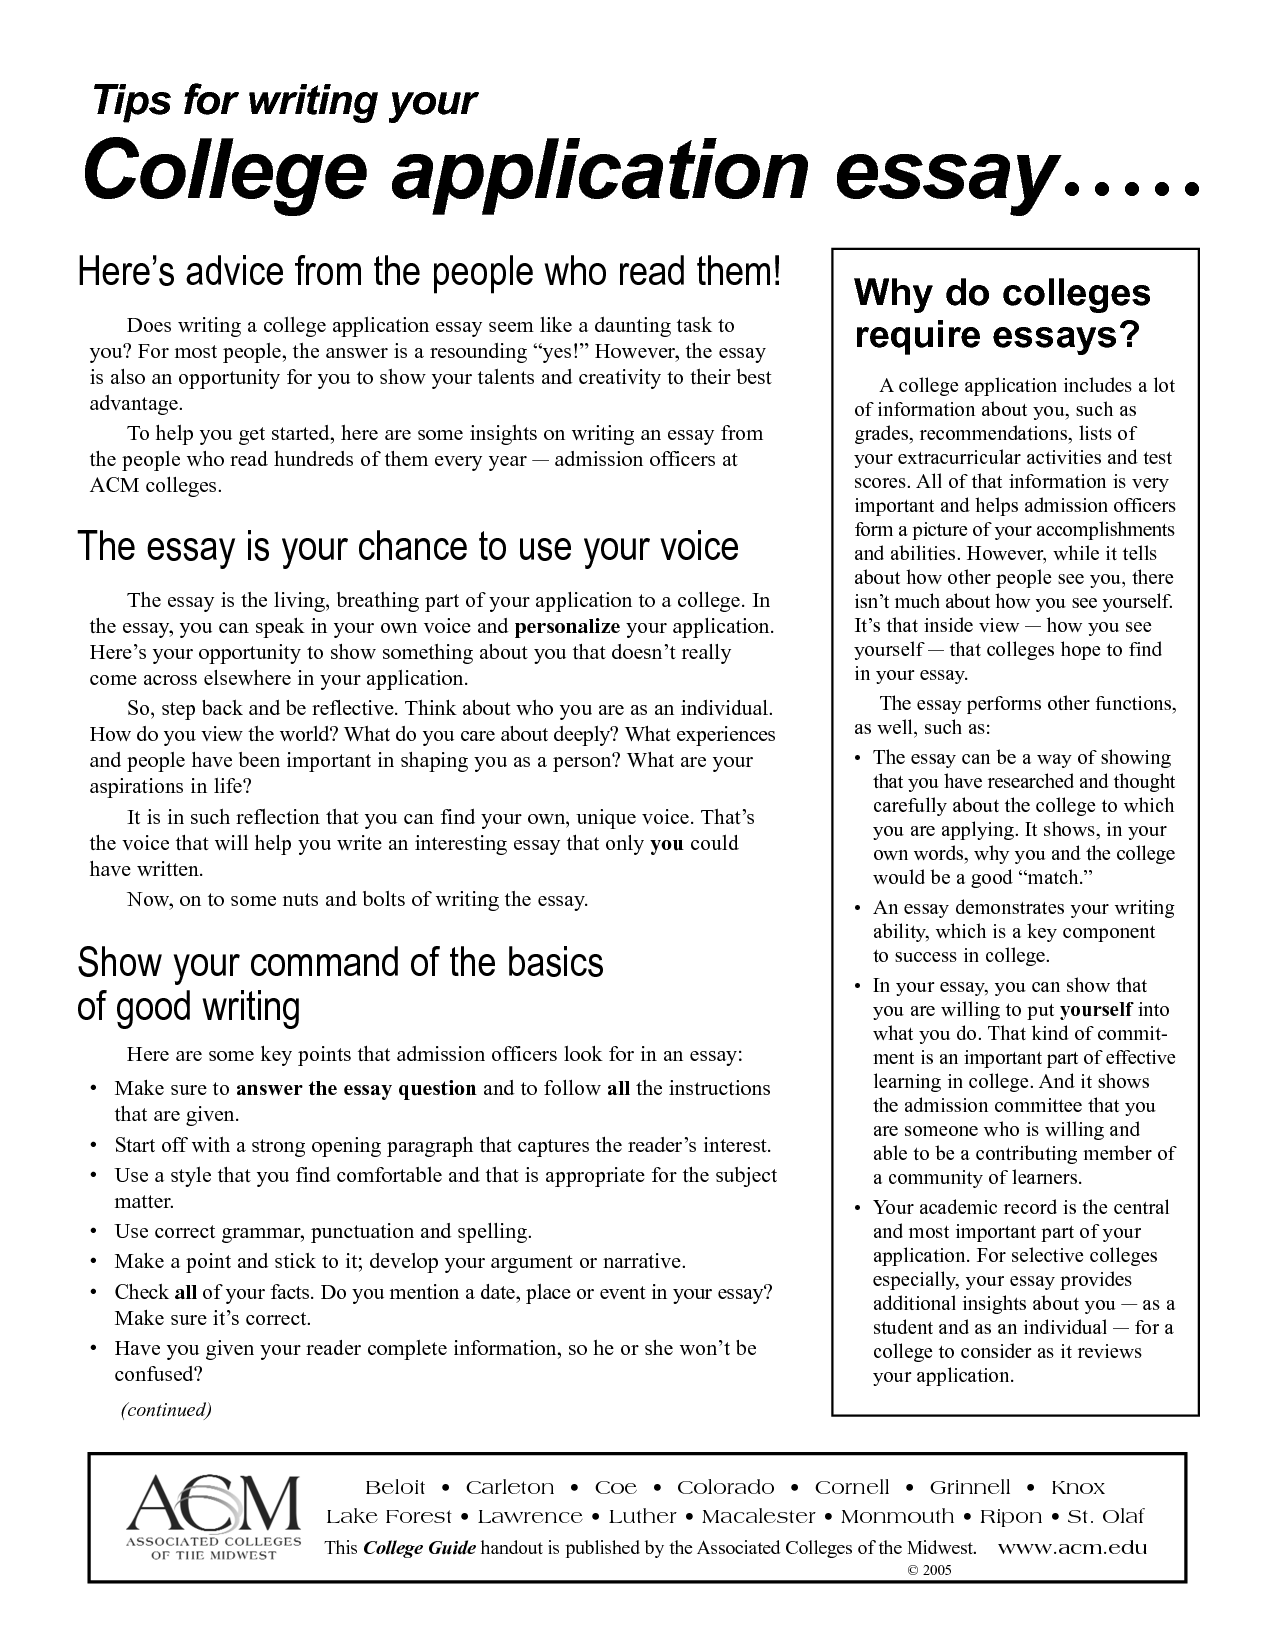 College admissions essay for wesleyan college